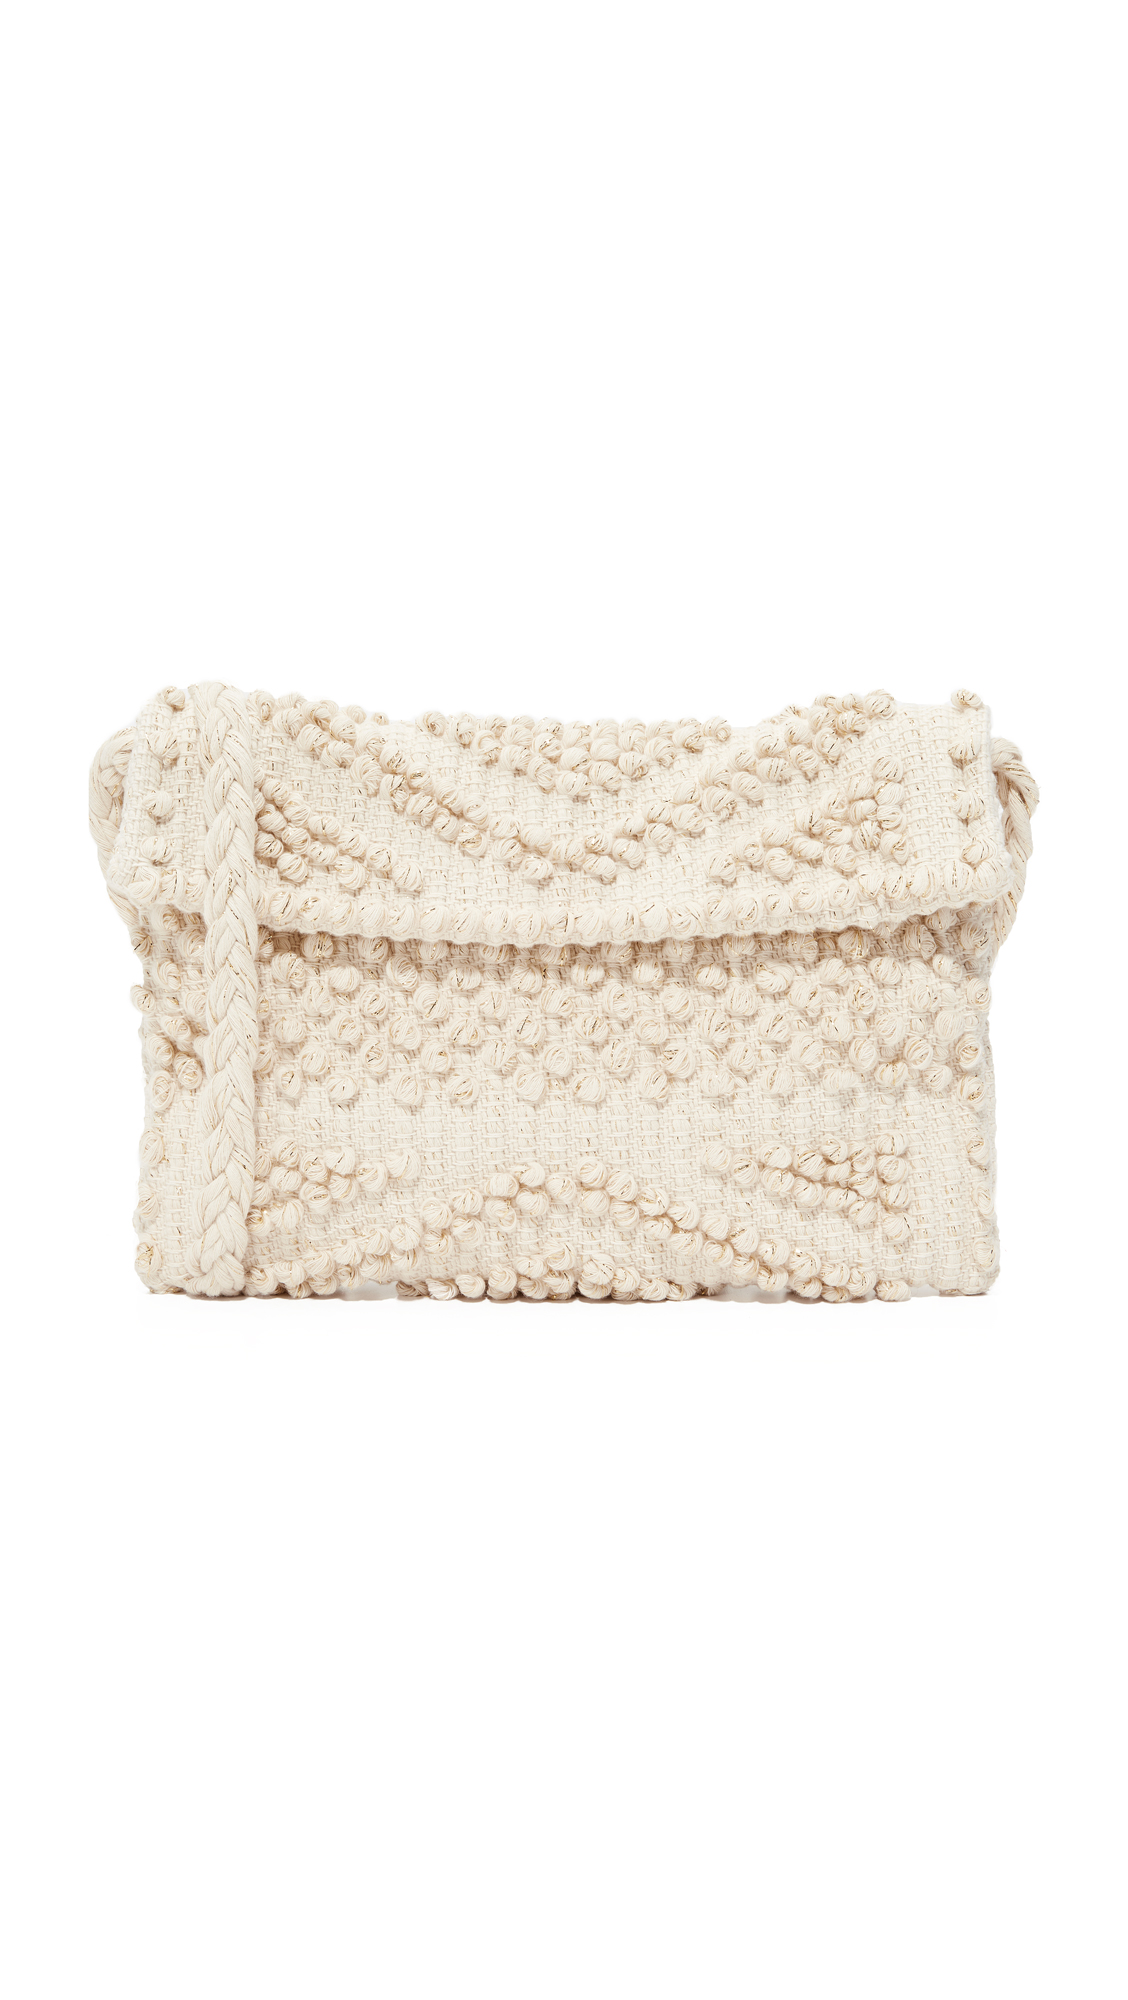 Antonello Suni Rombi Clutch - Cream/Gold